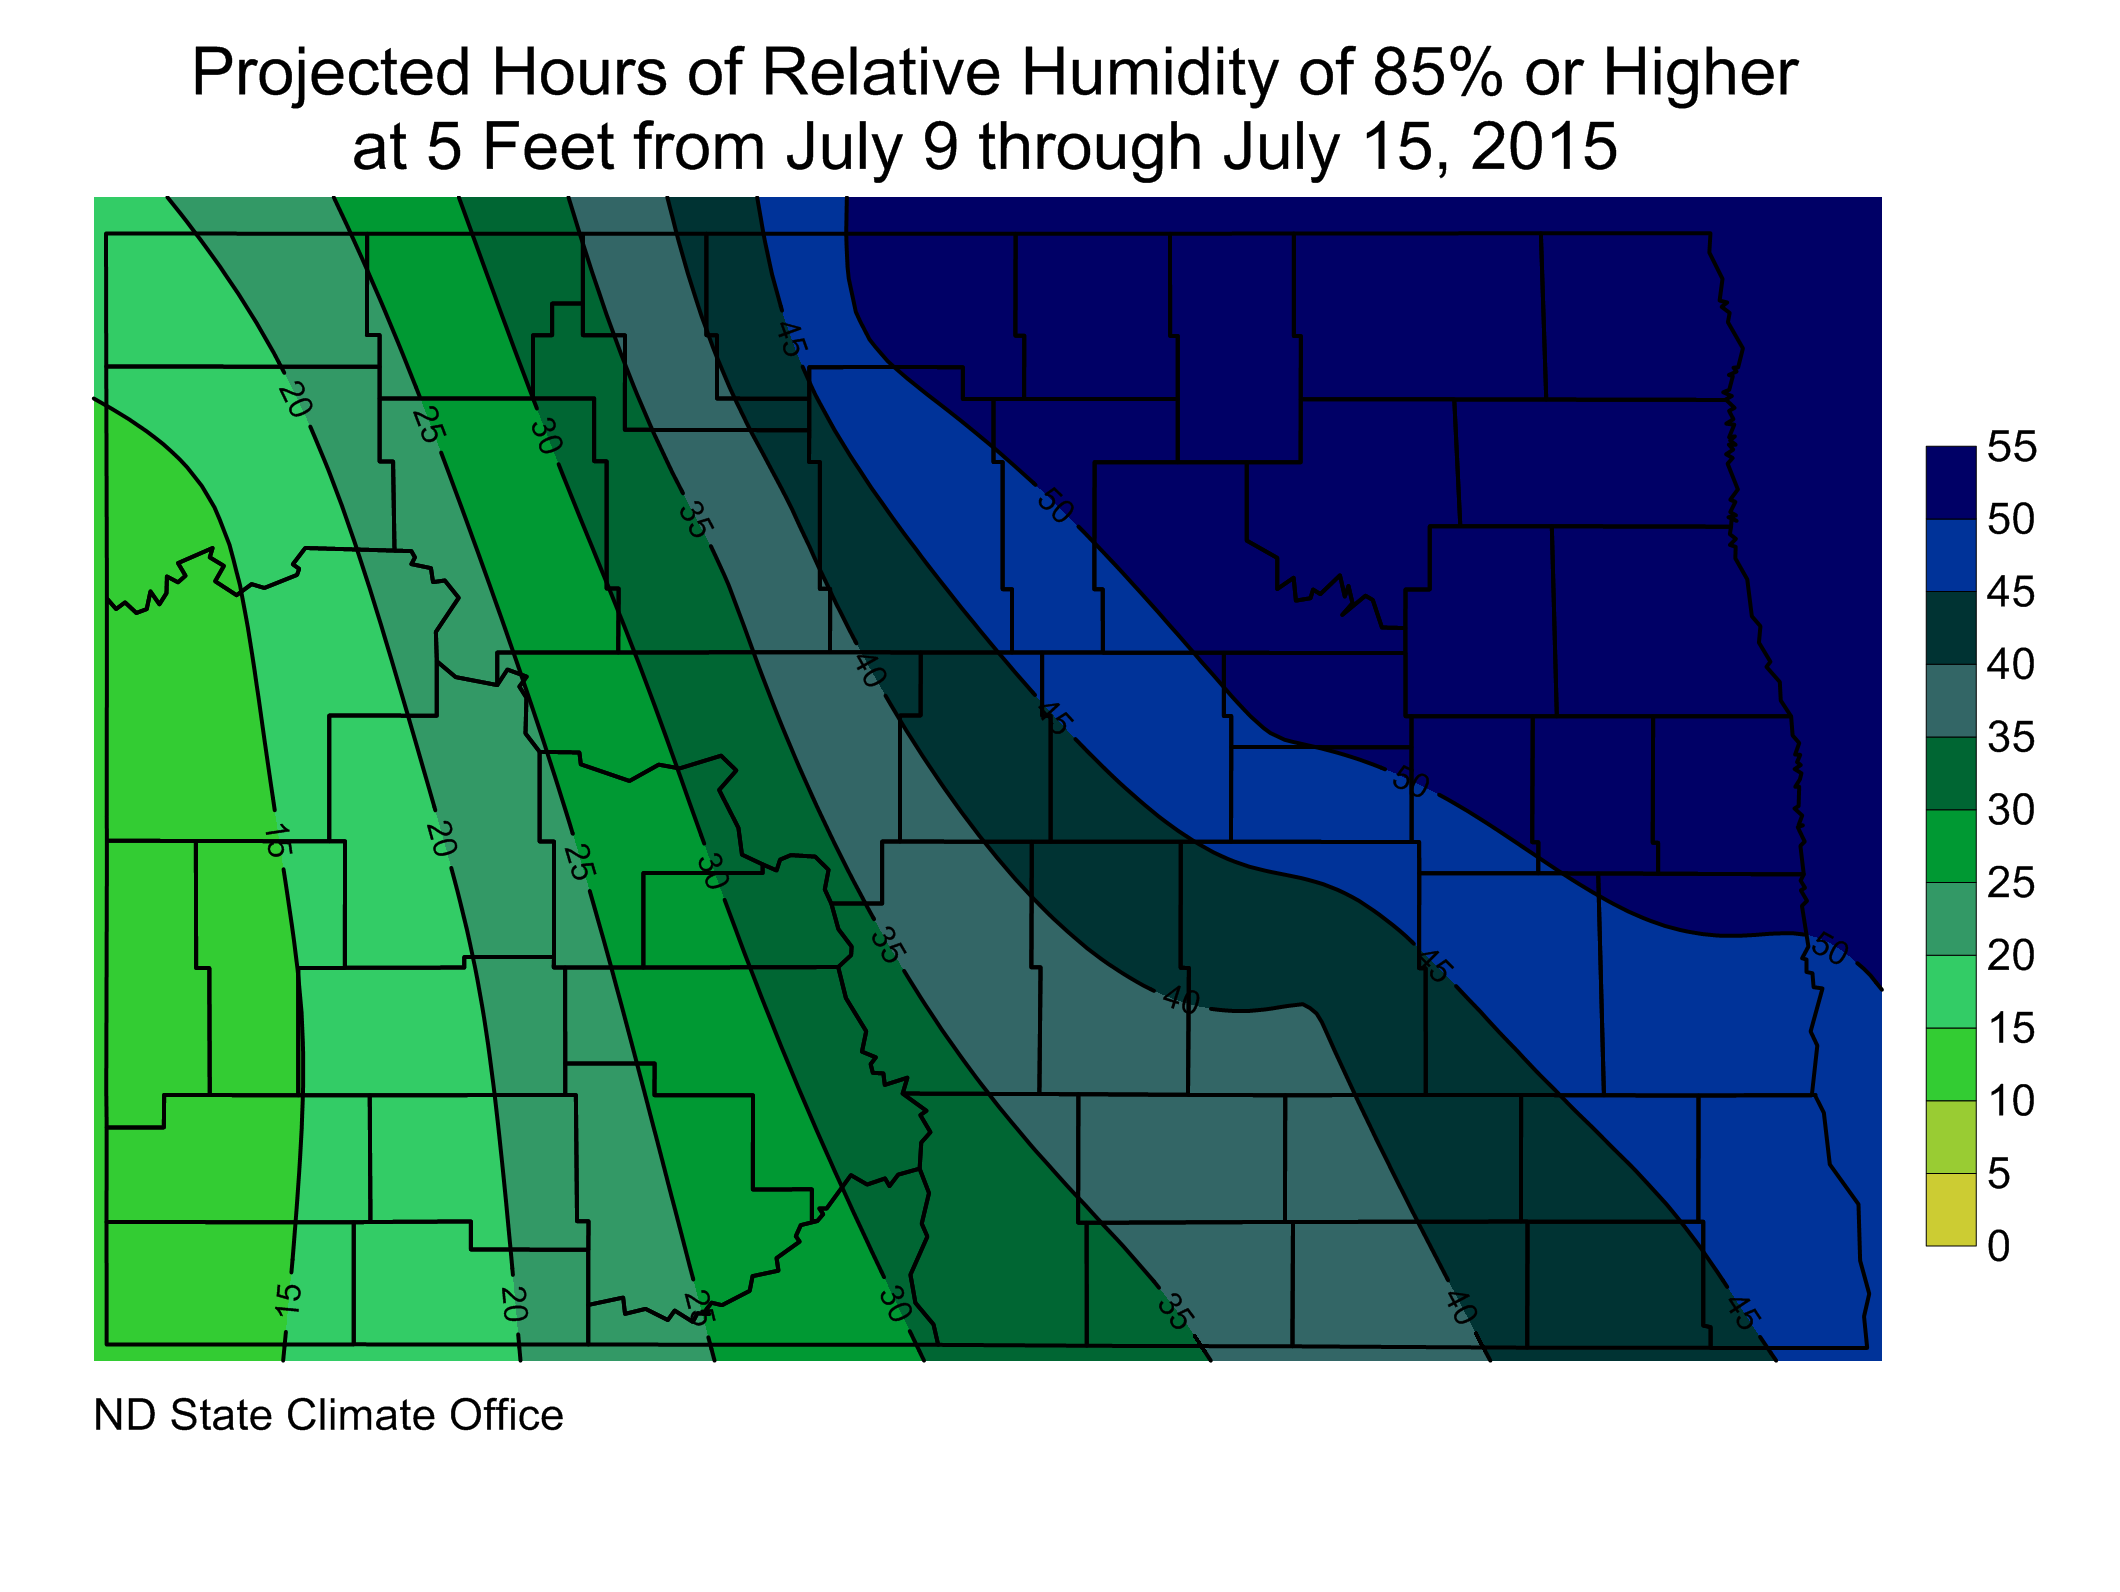 Projected Hours of RH of 85% or Higher at 5 feet from July 9 through July 15, 2015